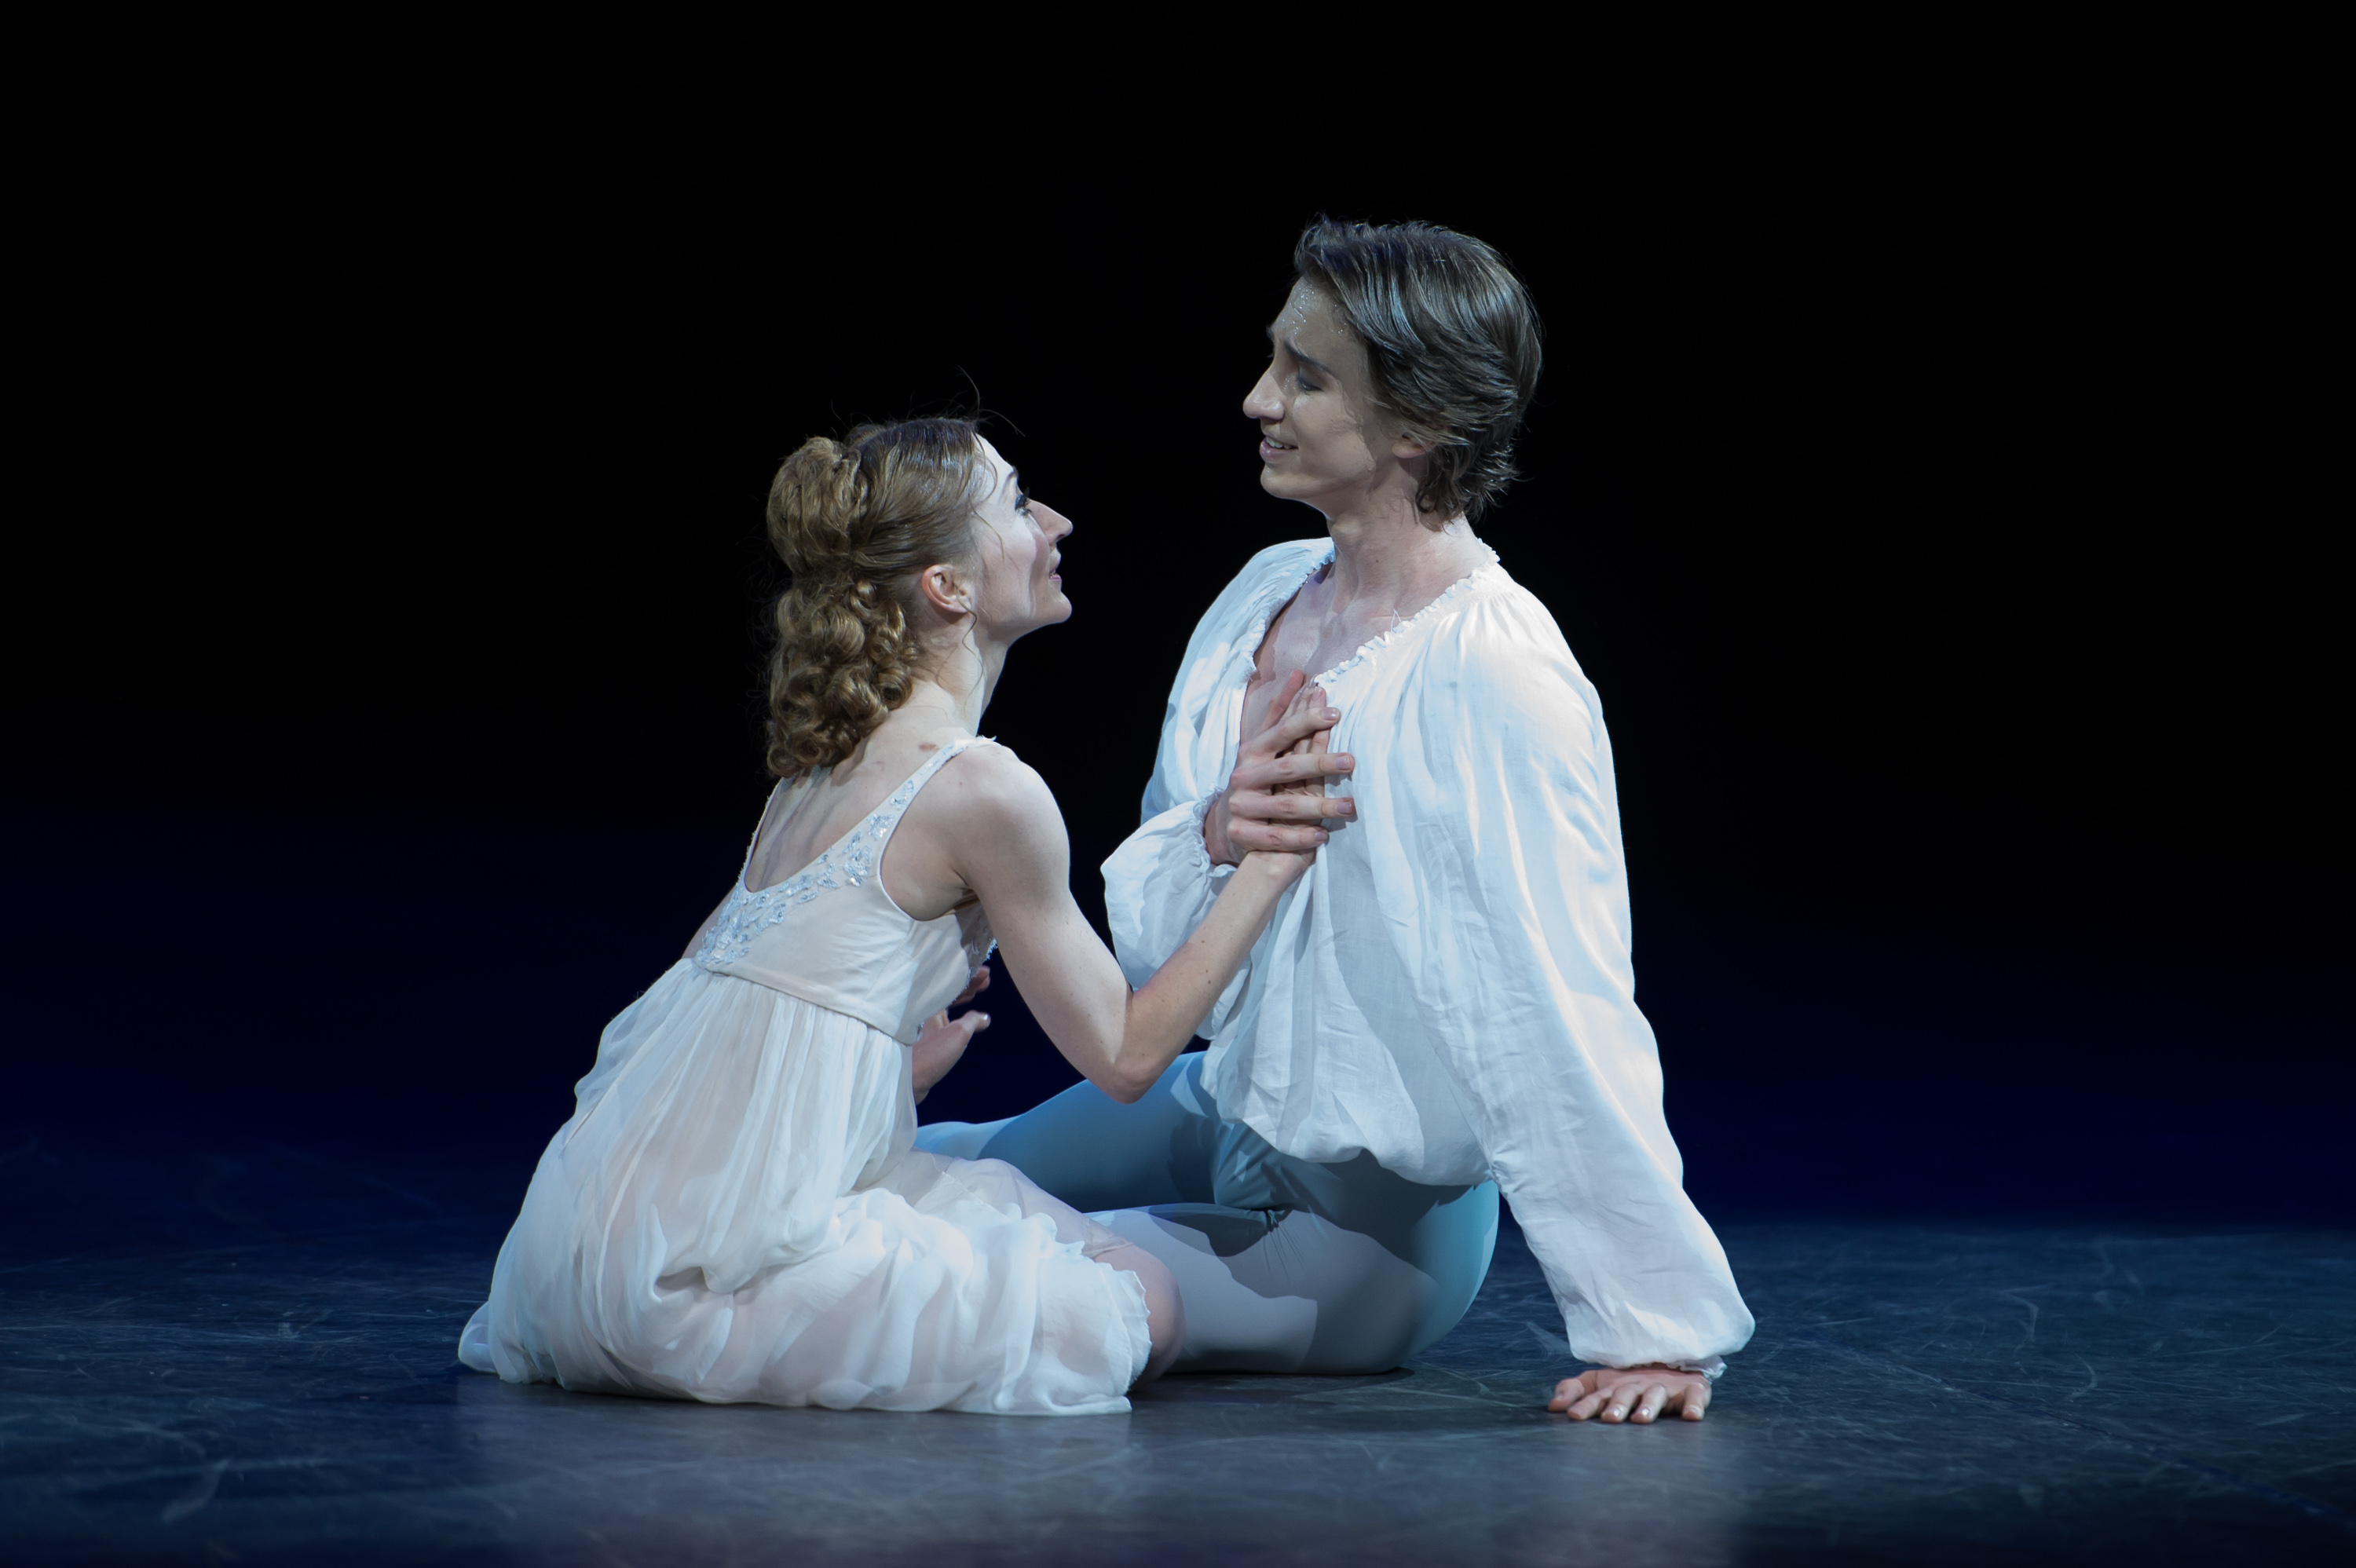 English National Ballet's Romeo & Juliet